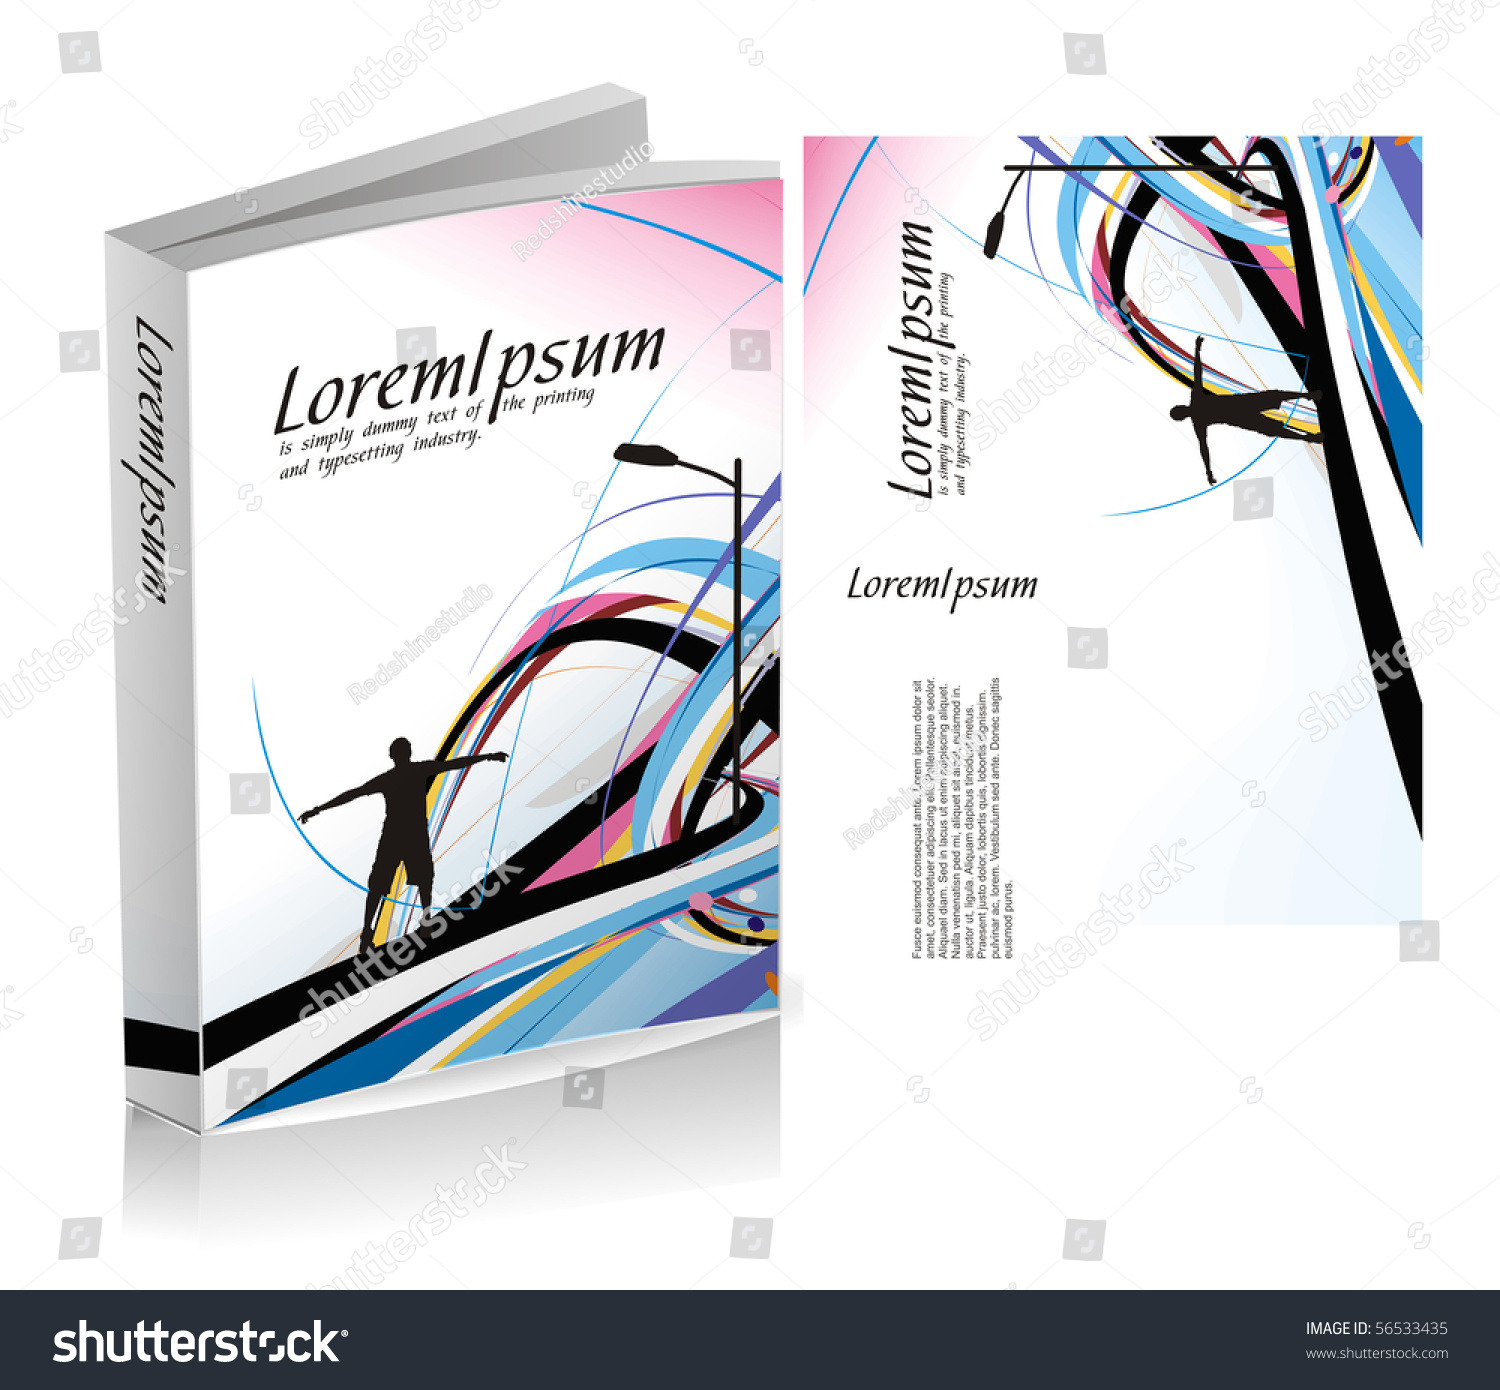 Book Cover Design Isolated Over Colorful Background : Book cover design isolated over colorful background stock